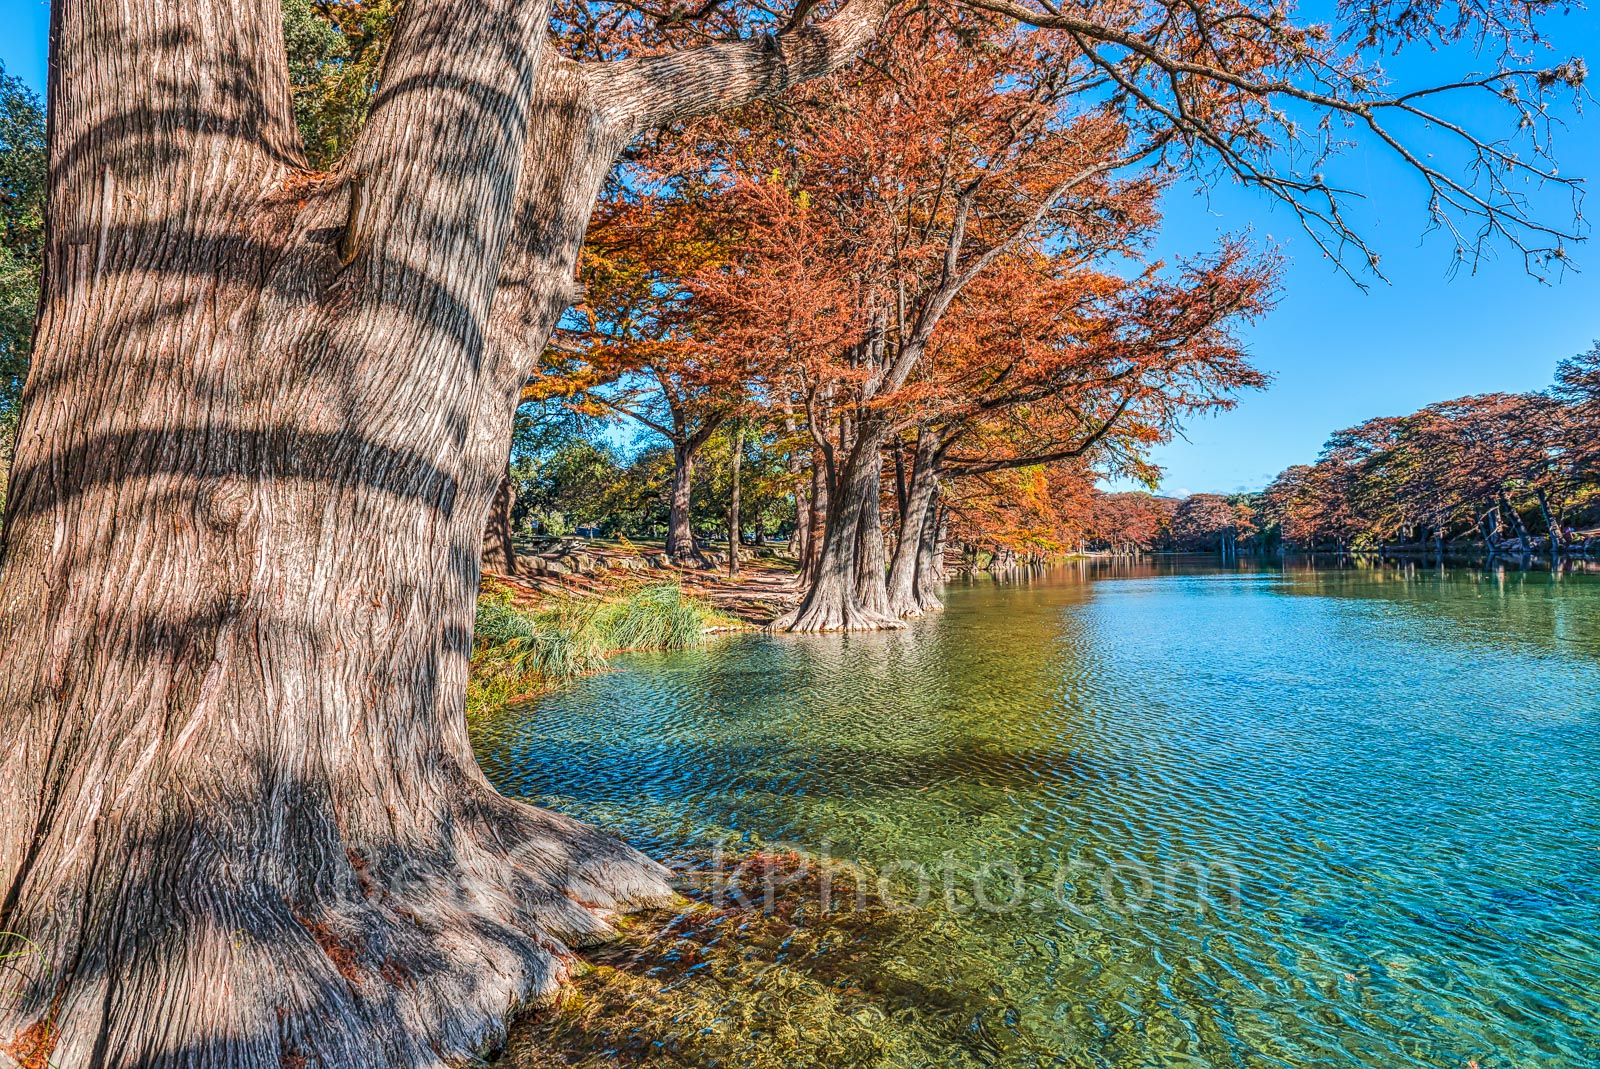 America, American, Frio River, Garner State Park, blue green waters, blue water, colorful, cypress trees, emerald, fall, fall colors, fall cypress trees, fall trees, images of Texas, landscape, landsc, photo